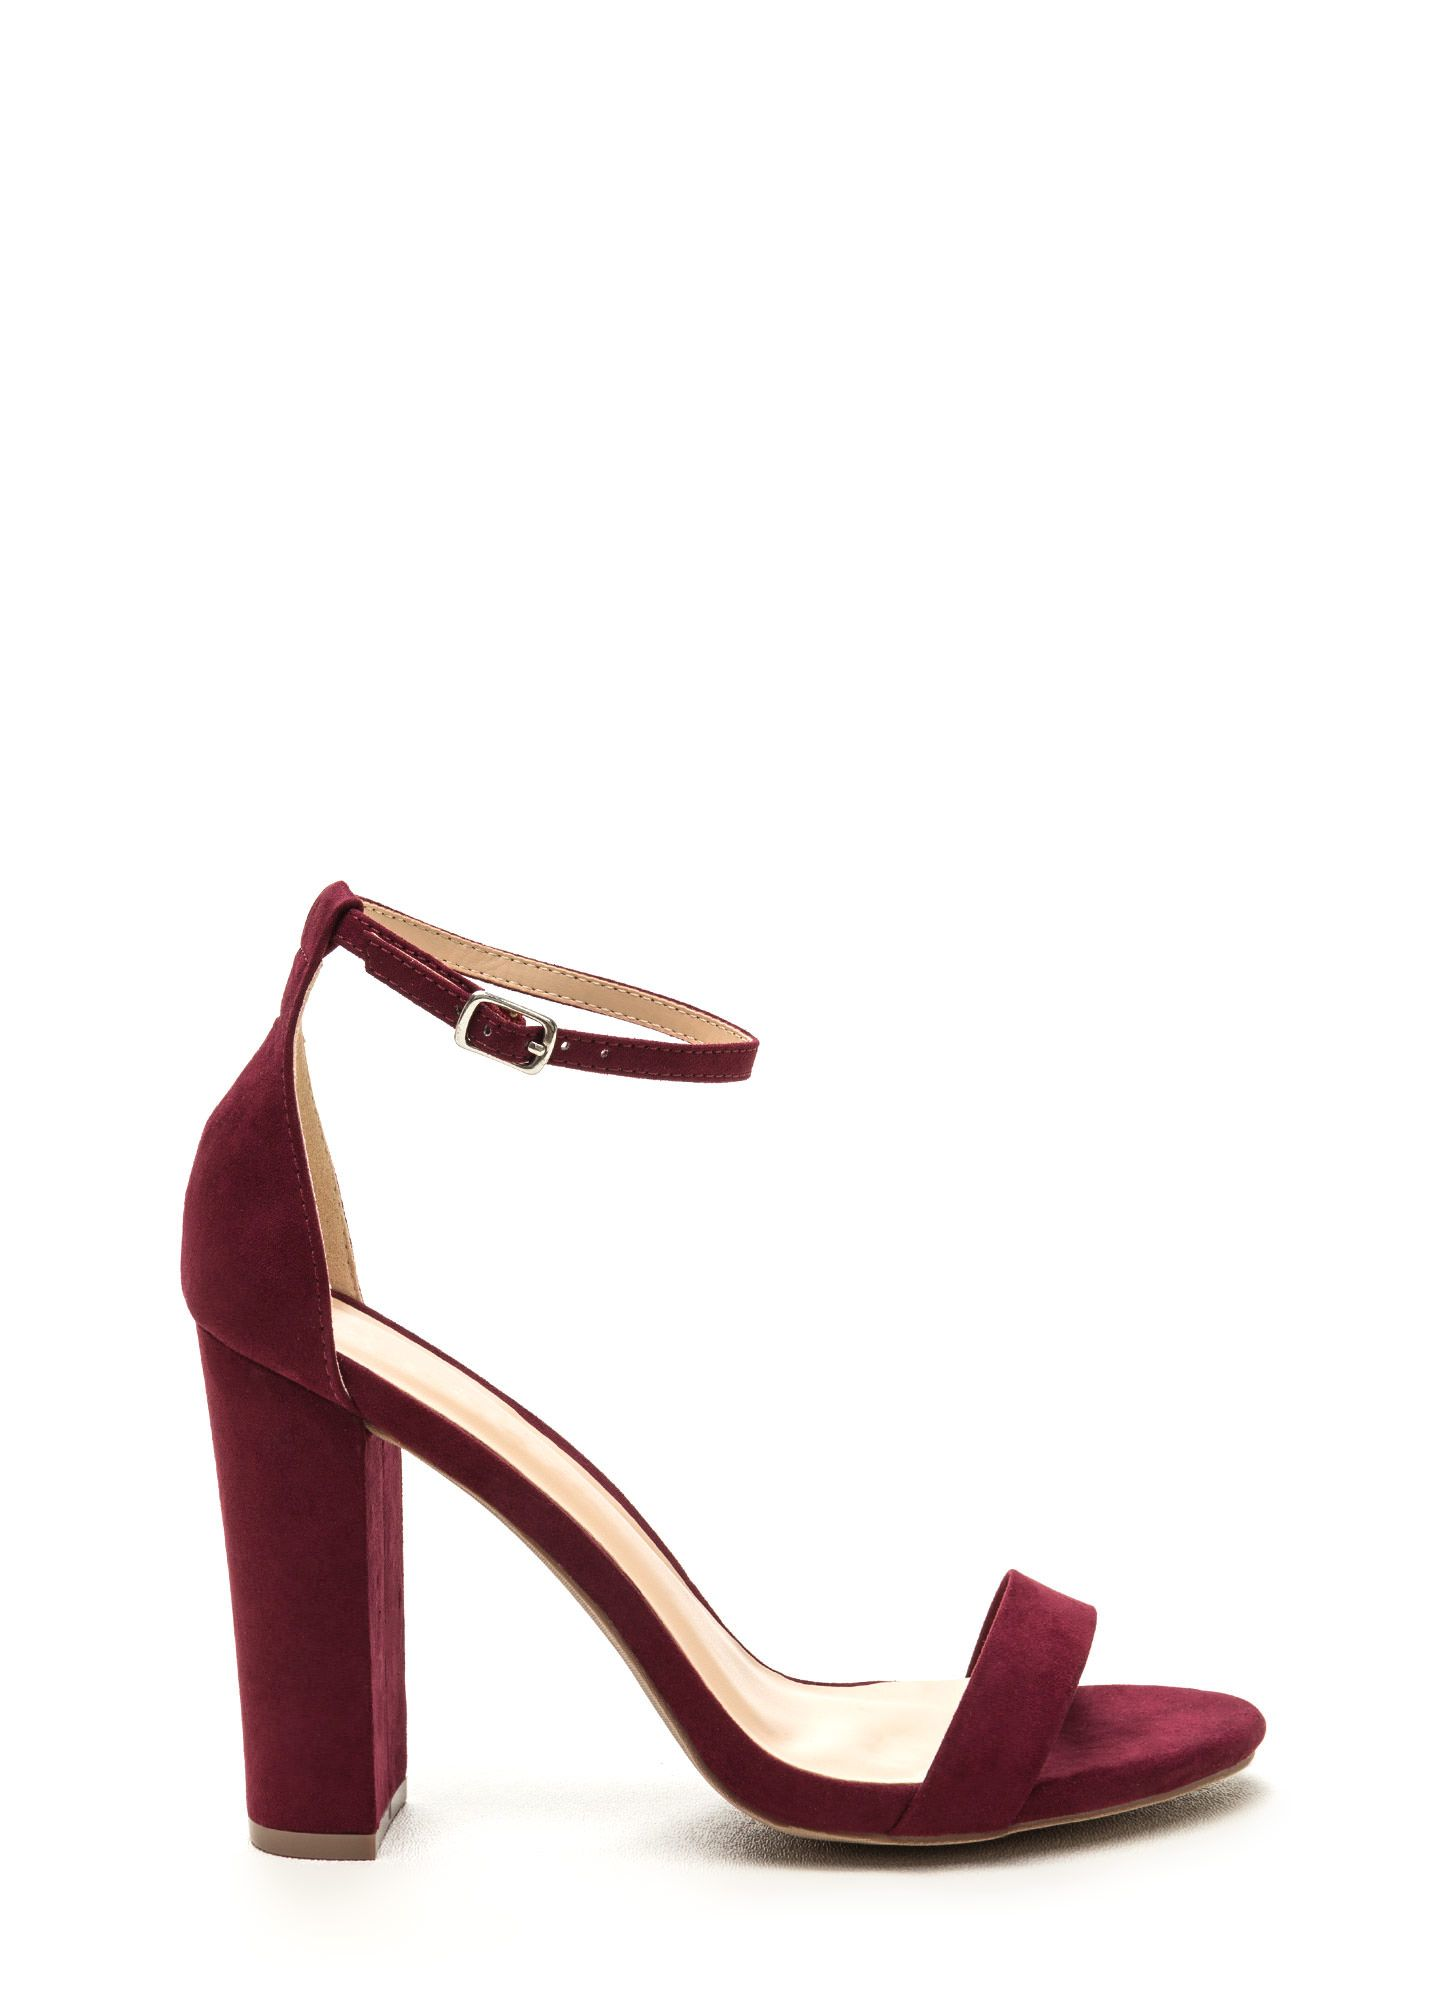 18+ Chunky heel dress shoes trends